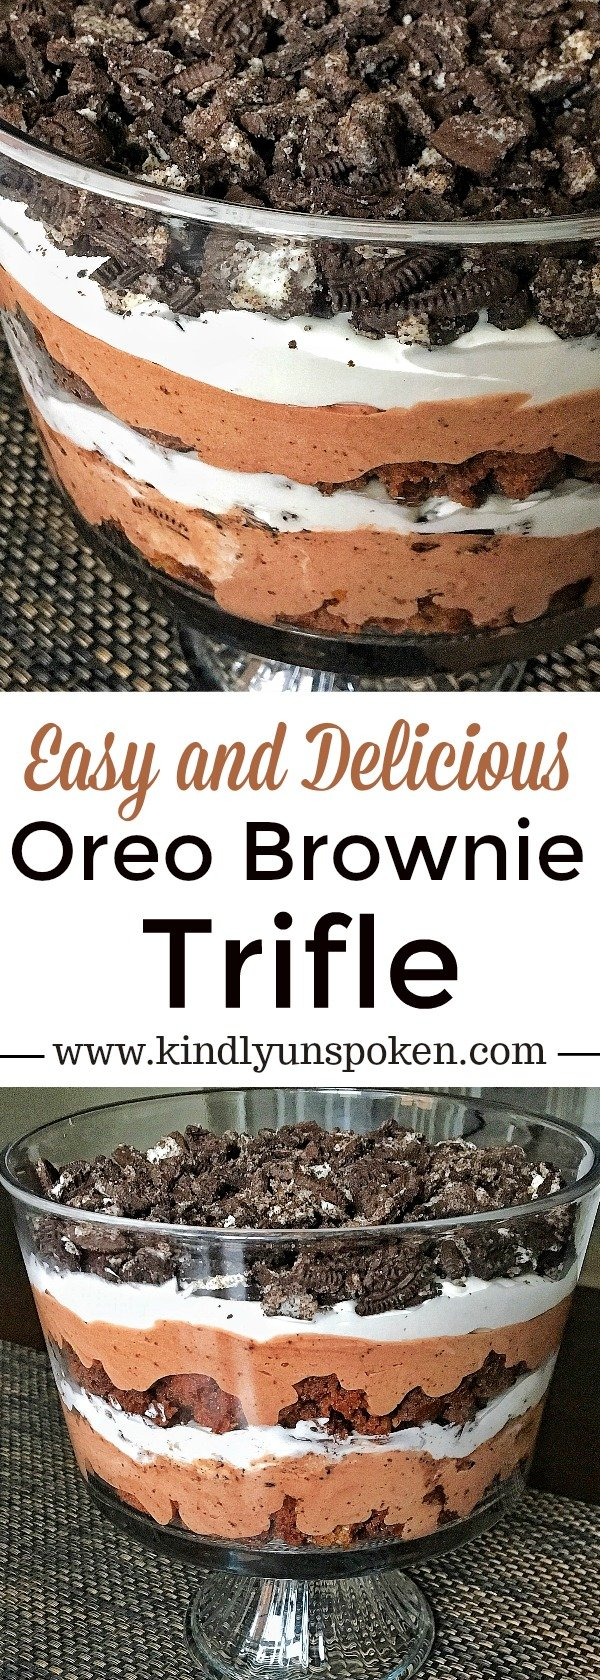 This Easy and Delicious Oreo Brownie Trifle is so easy to whip together and is the perfect dish for entertaining with family and friends. Made with rich layers of brownie pieces, an indulgent chocolate pudding, creamy whipped topping, and yummy Oreo pieces, it's the ultimate chocolate lover's dream dessert!